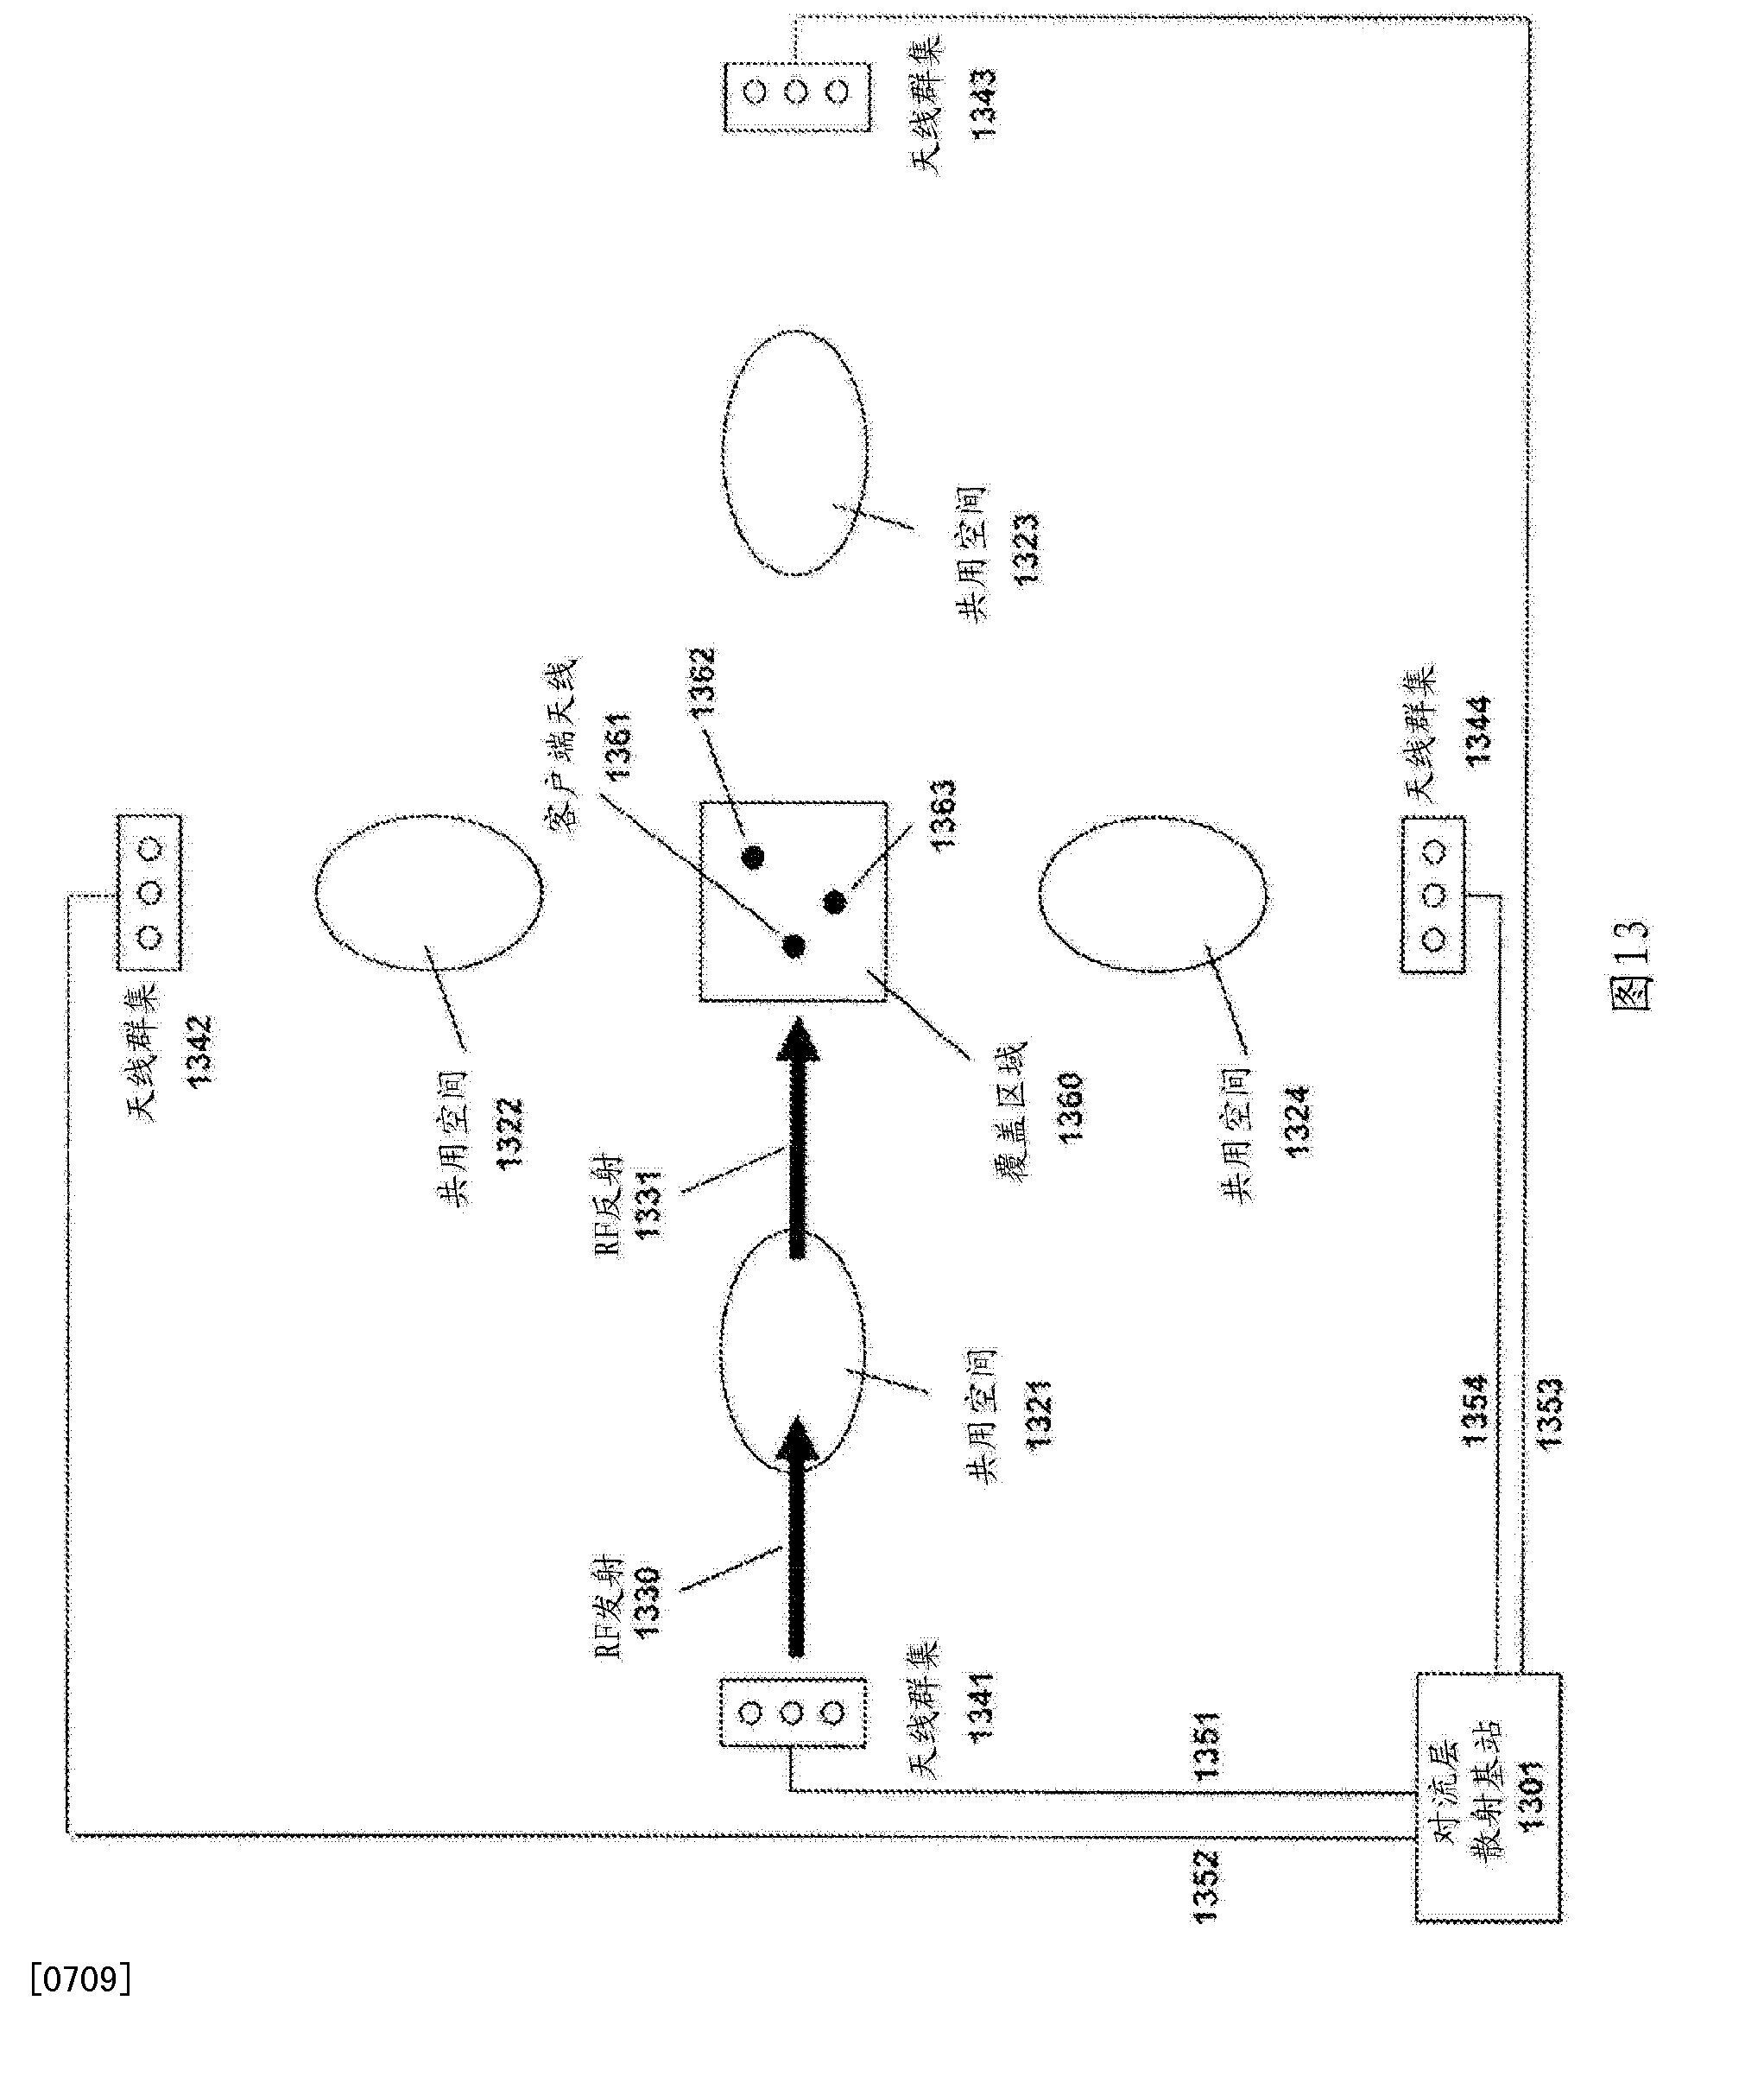 CN104603853A - System and methods for coping with doppler effects in